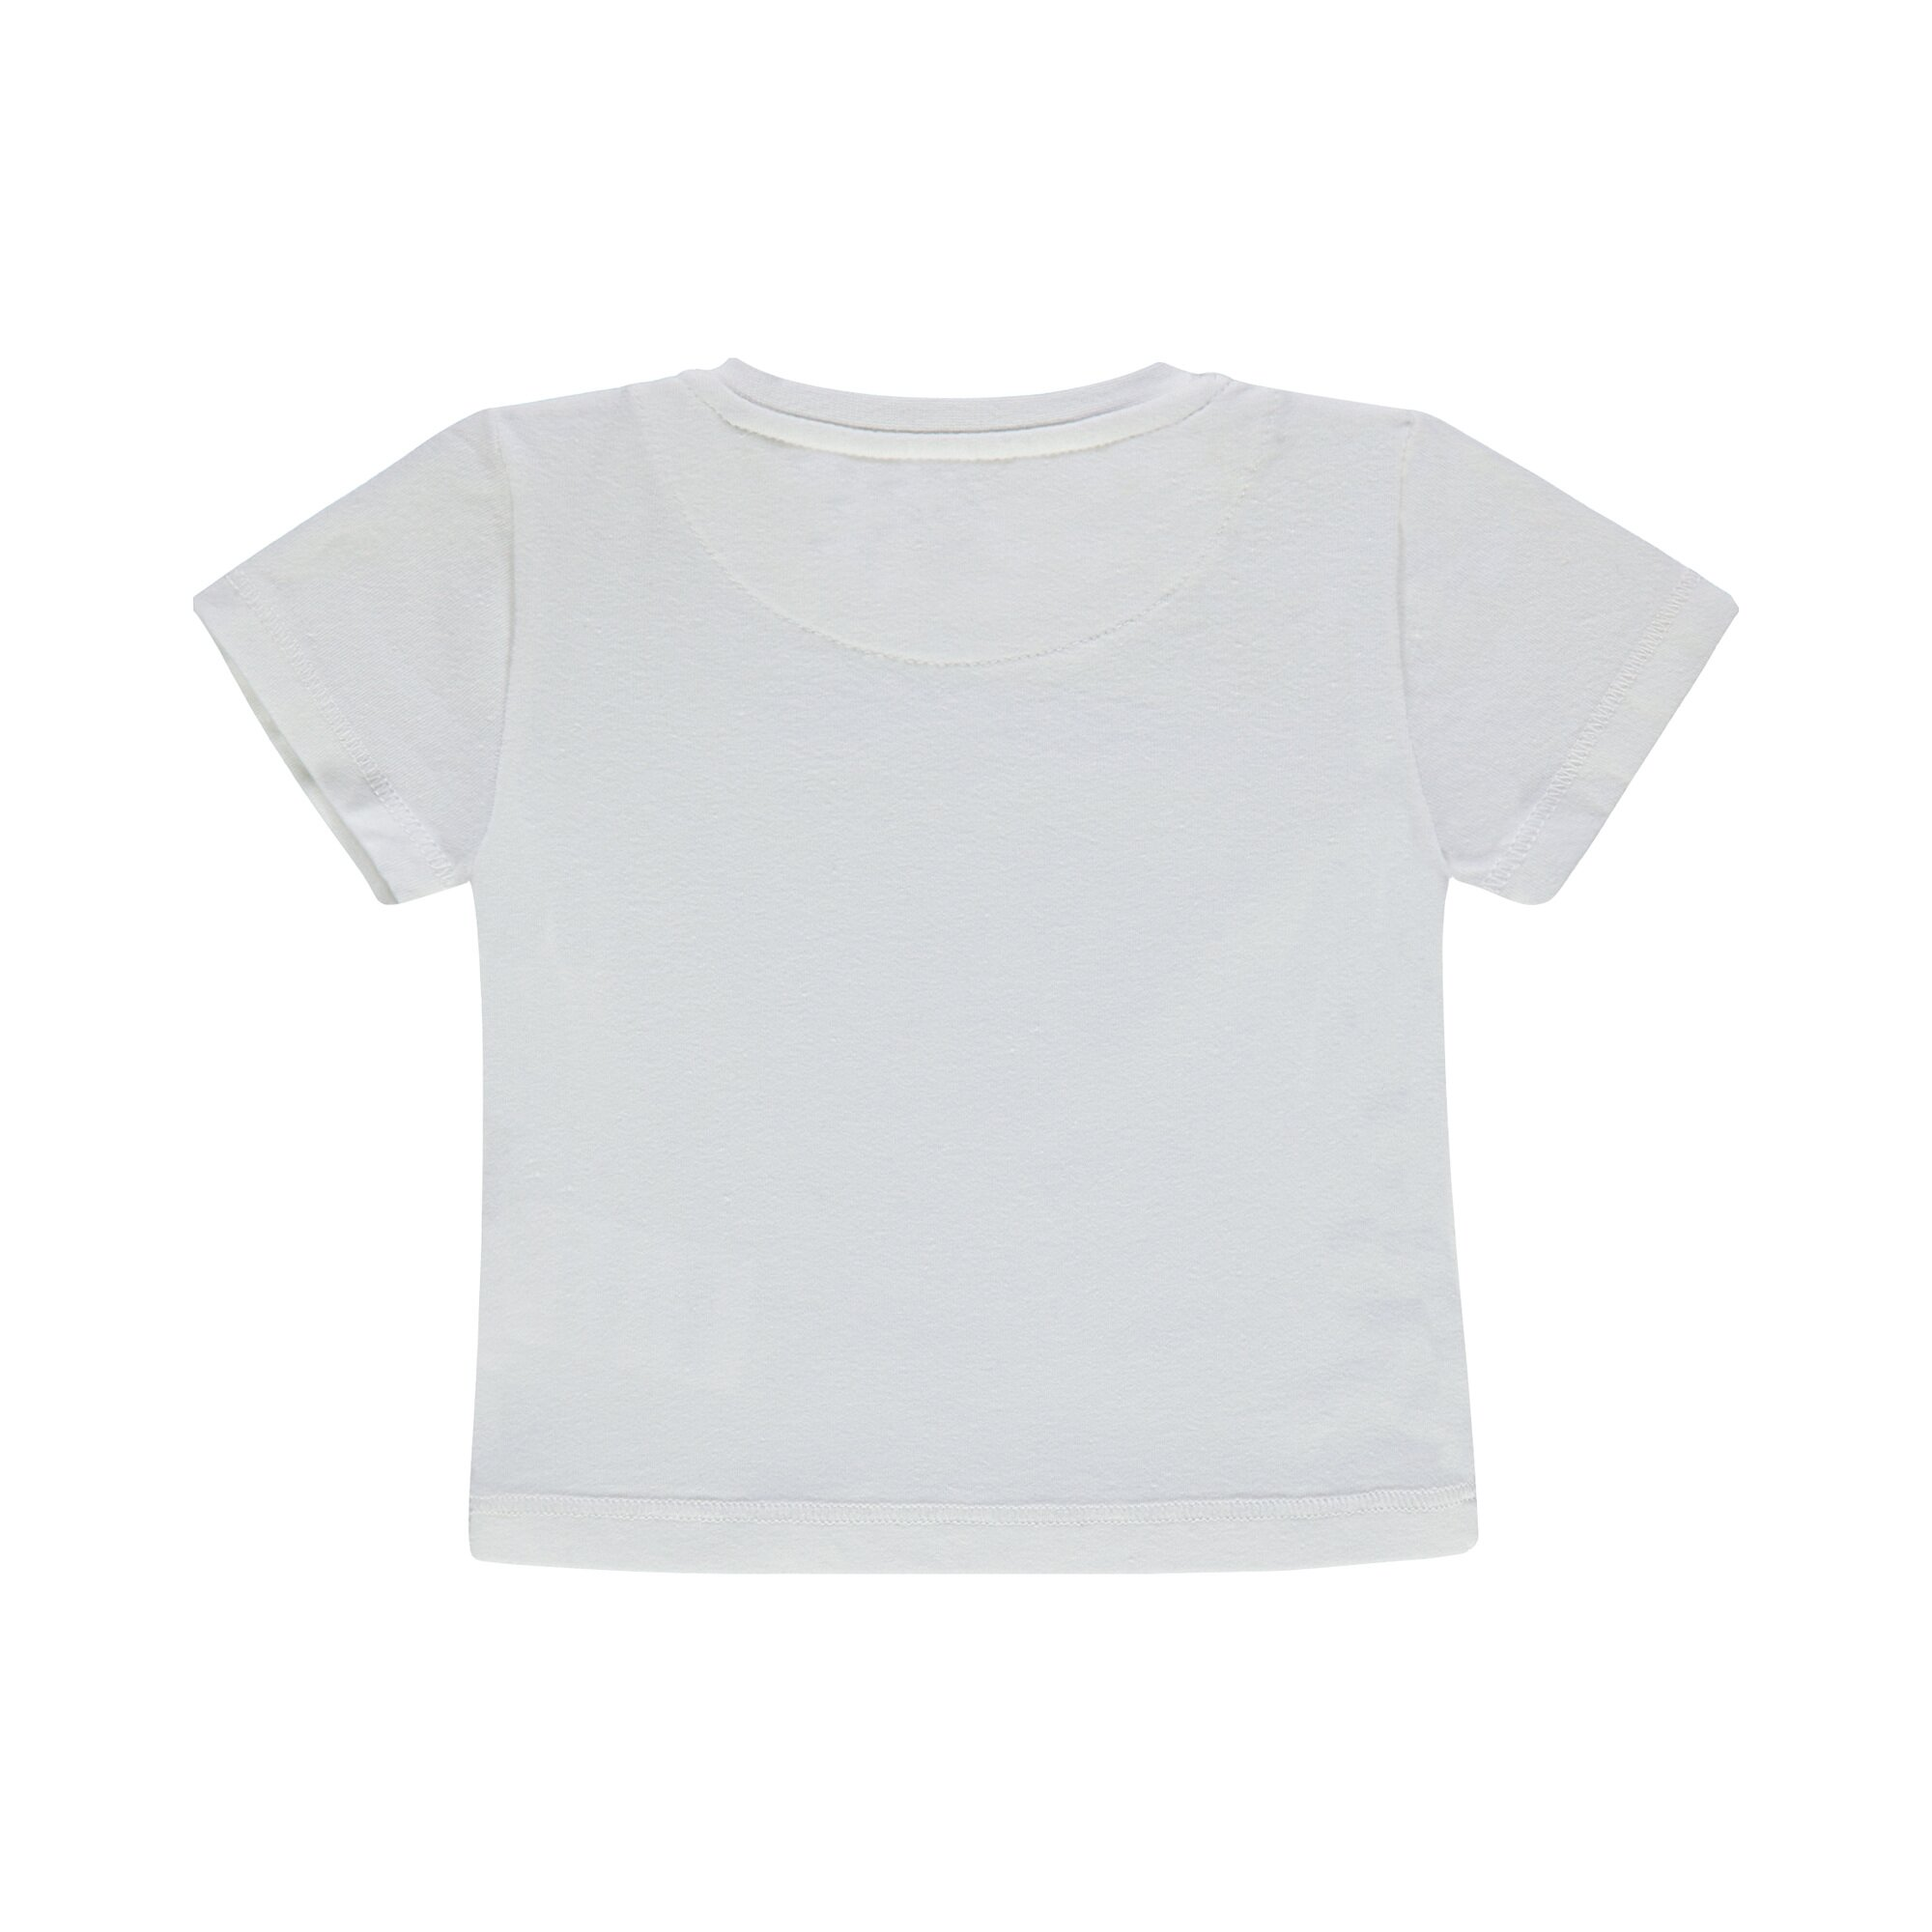 bellybutton-t-shirt-lkw